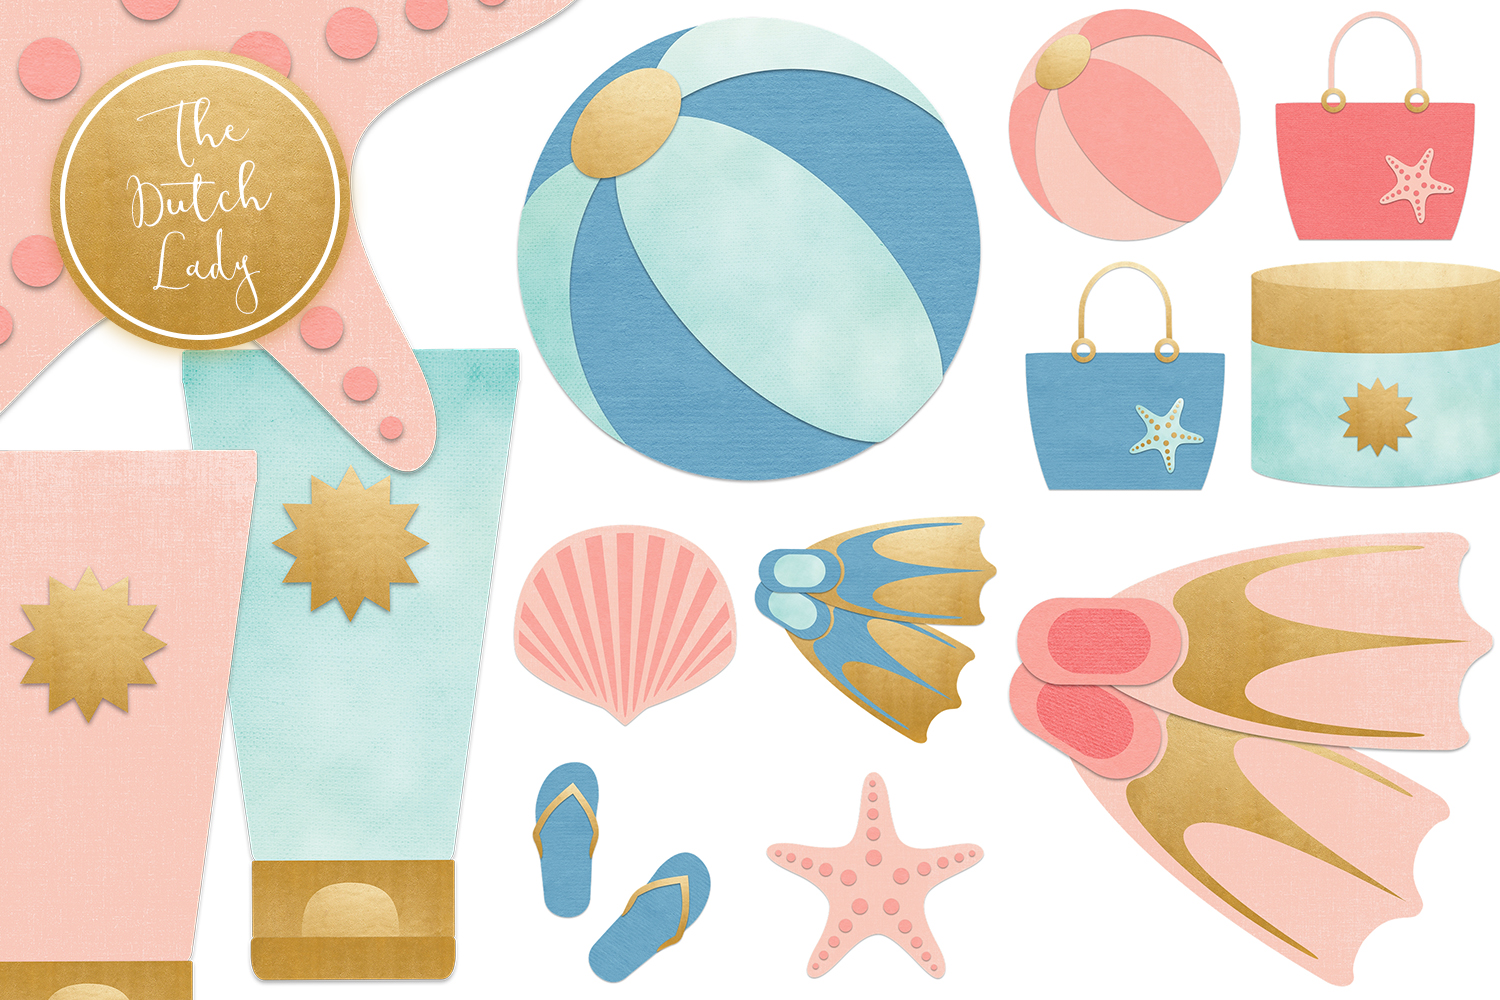 2019 beach vacation clipart banner transparent library Summer Beach Vacation Clipart Set banner transparent library